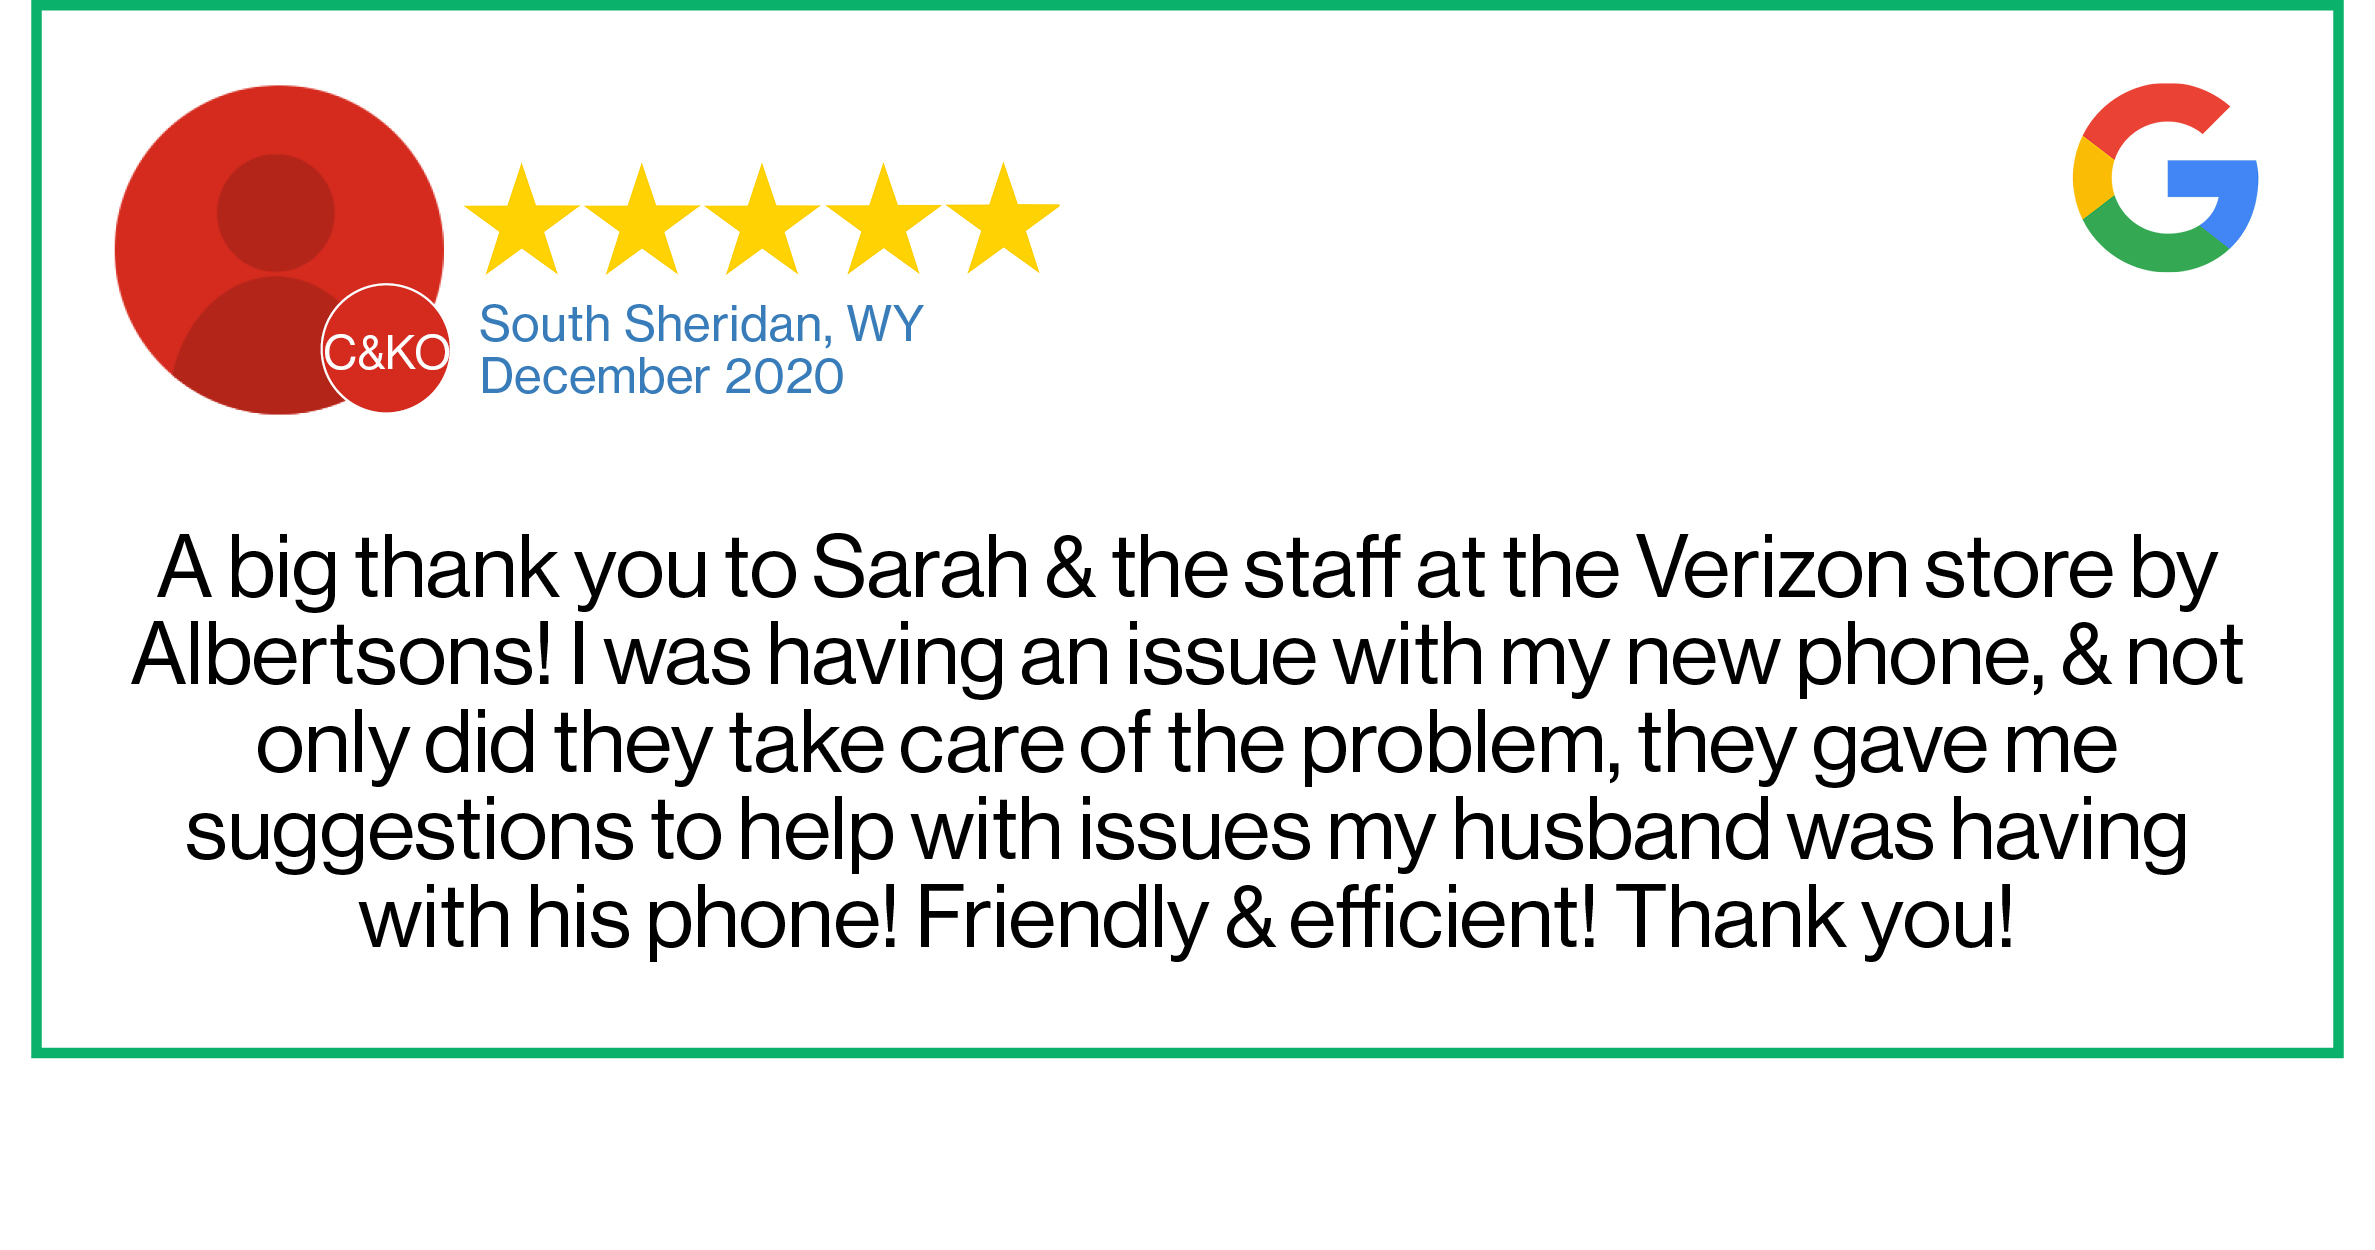 Check out this recent customer review about the Verizon Cellular Plus store in Sheridan, Wyoming.